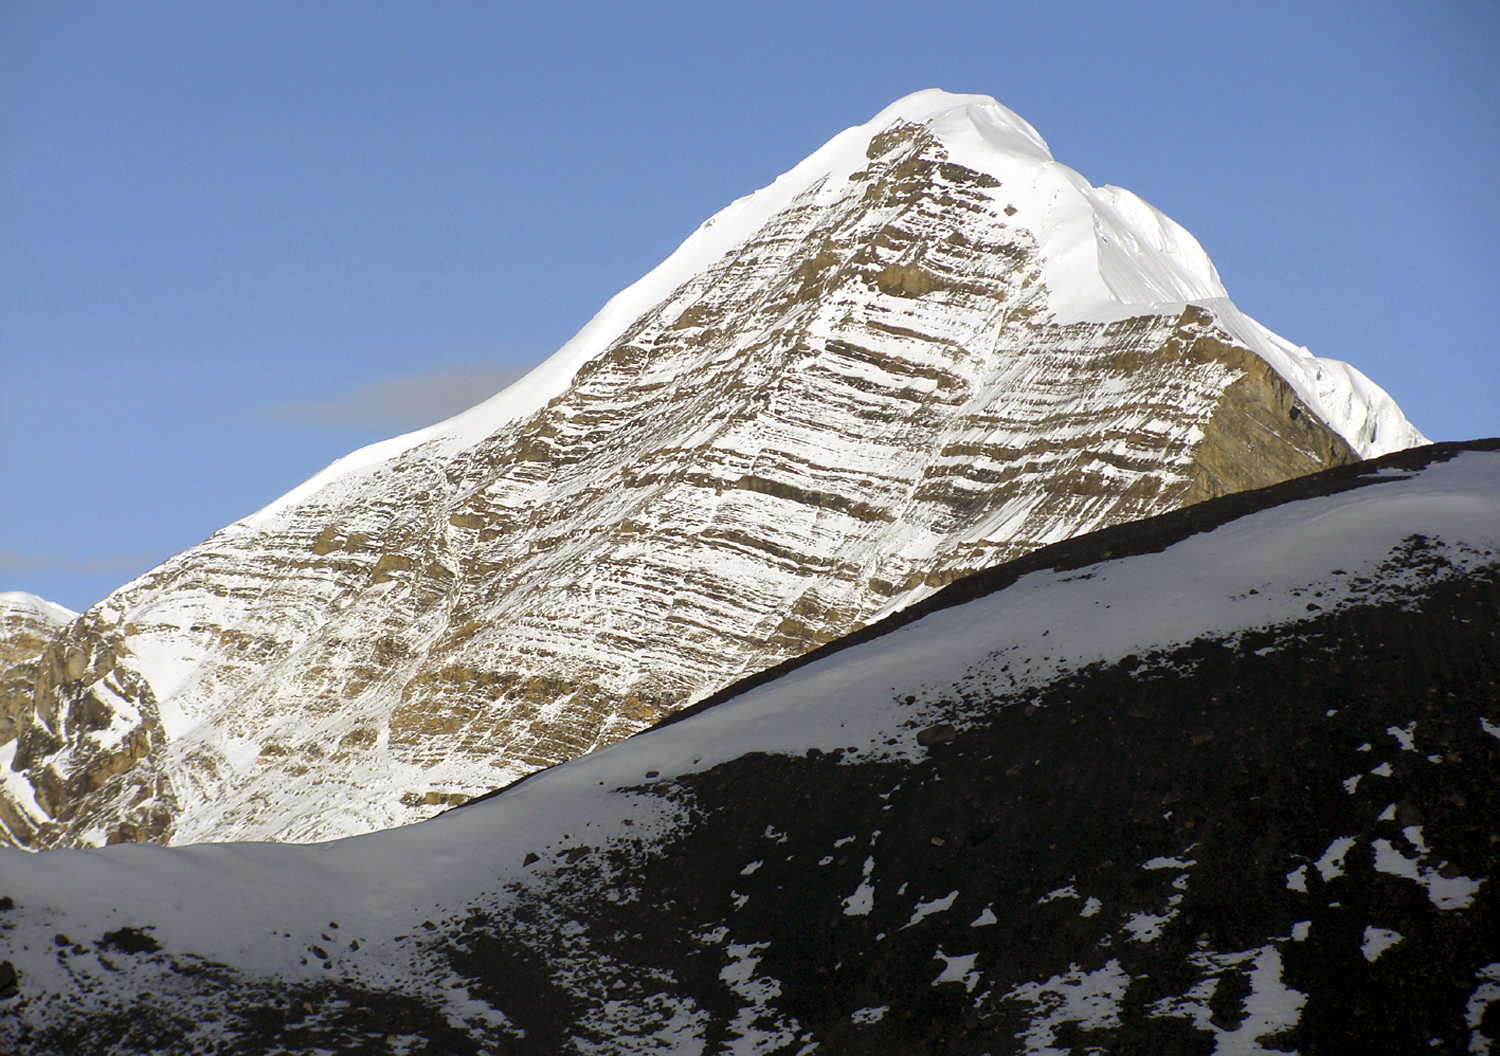 Unclimbed Peak 6,085m, immediately south of Amotsang, seen from north face of Pokharkan. In between lies unexplored valley of upper Loha Khola.